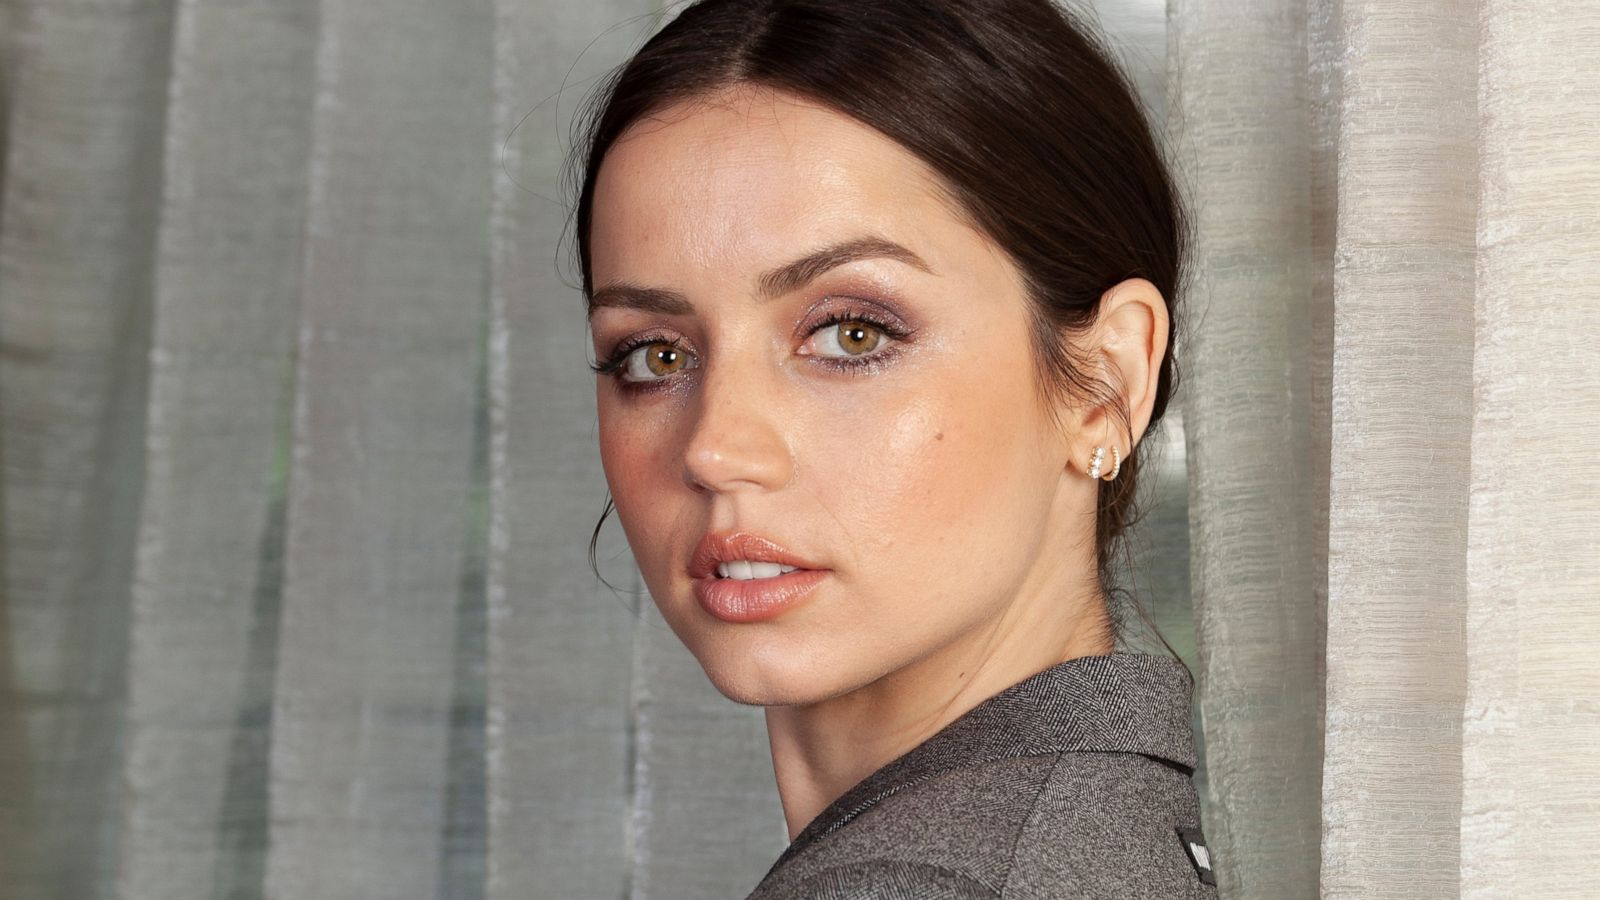 From Knives Out To Bond Ana De Armas Is On The Rise Abc News